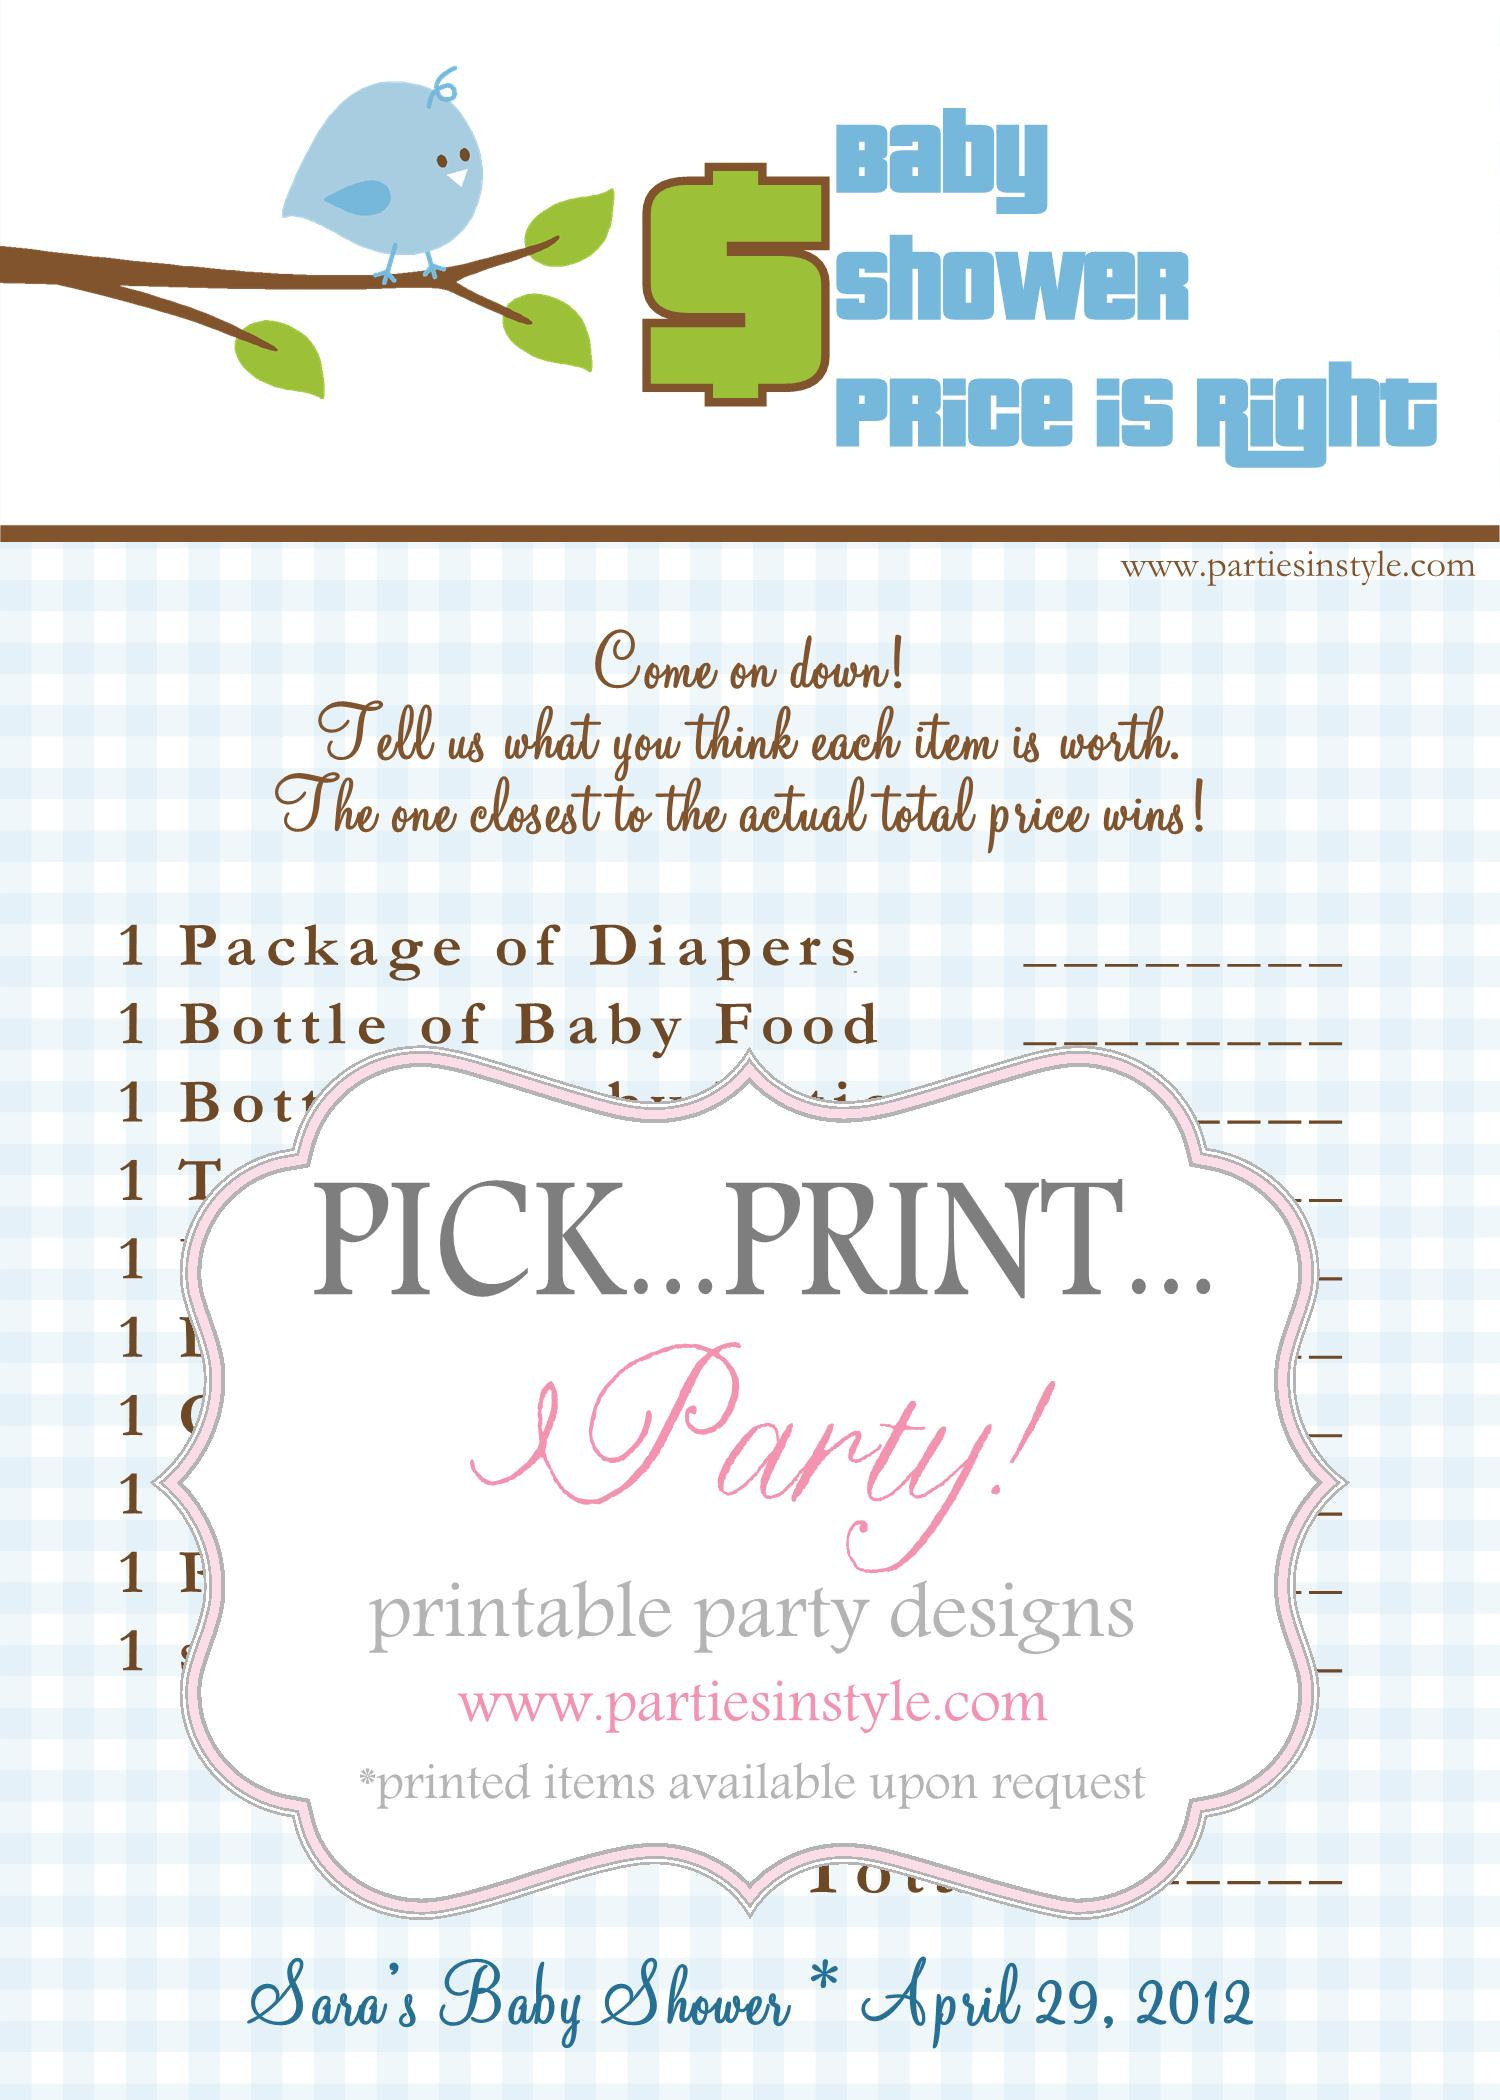 Prices Right Baby Shower Game images